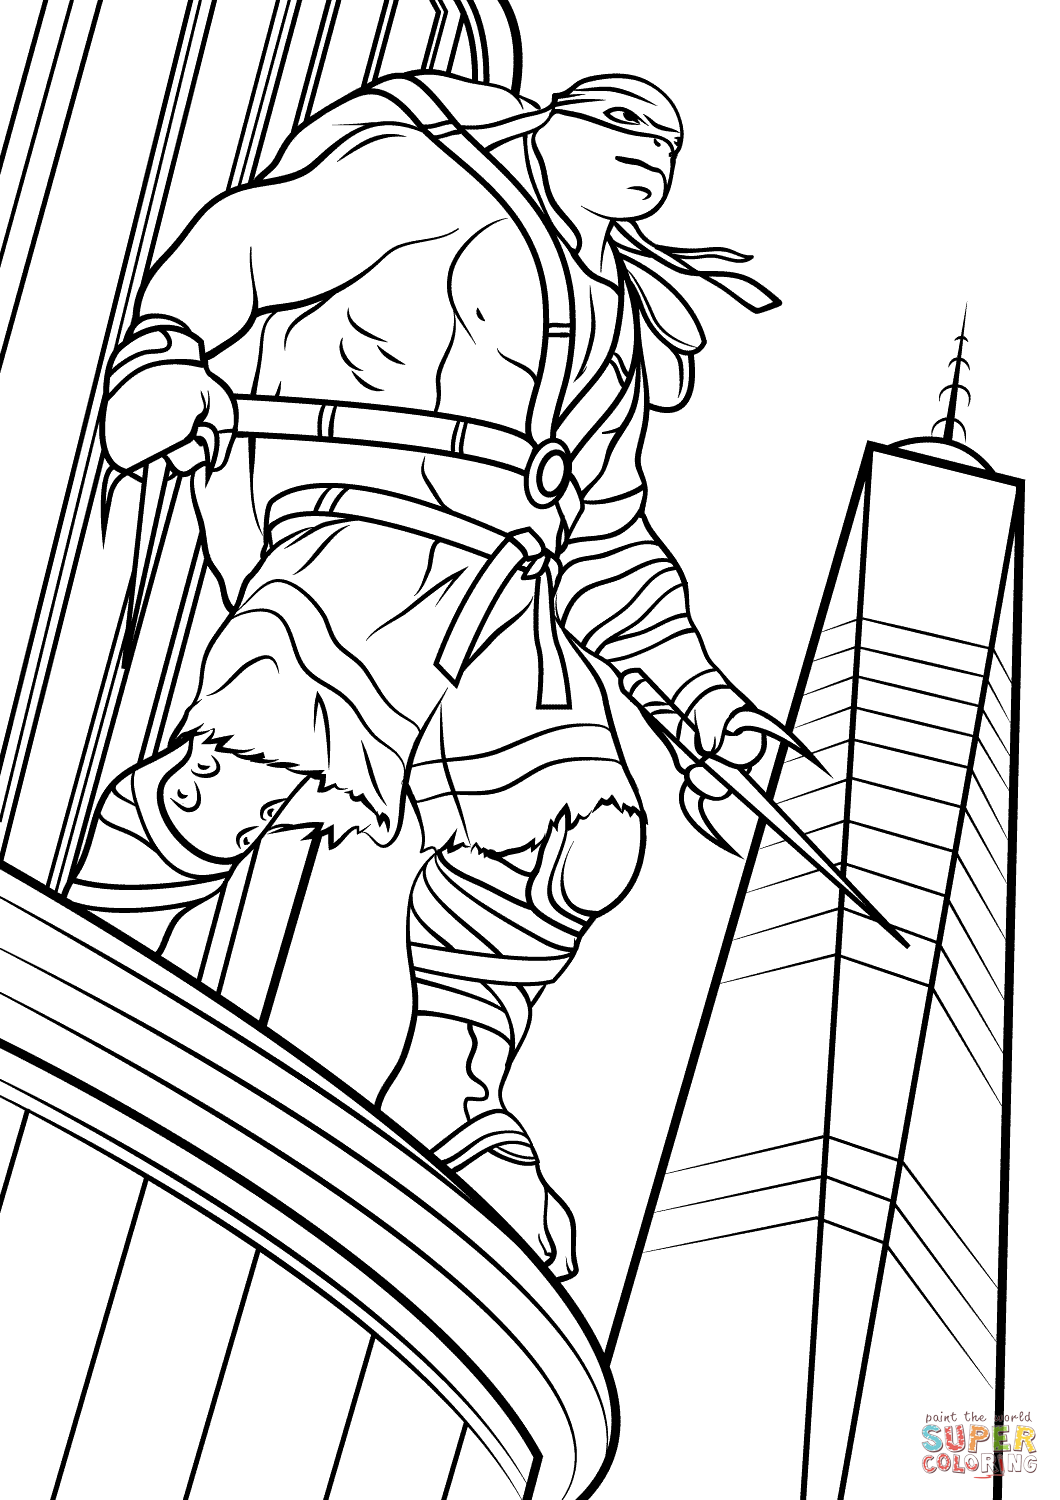 Raphael From Teenage Mutant Ninja Turtles Out Of The Shadows Coloring Page